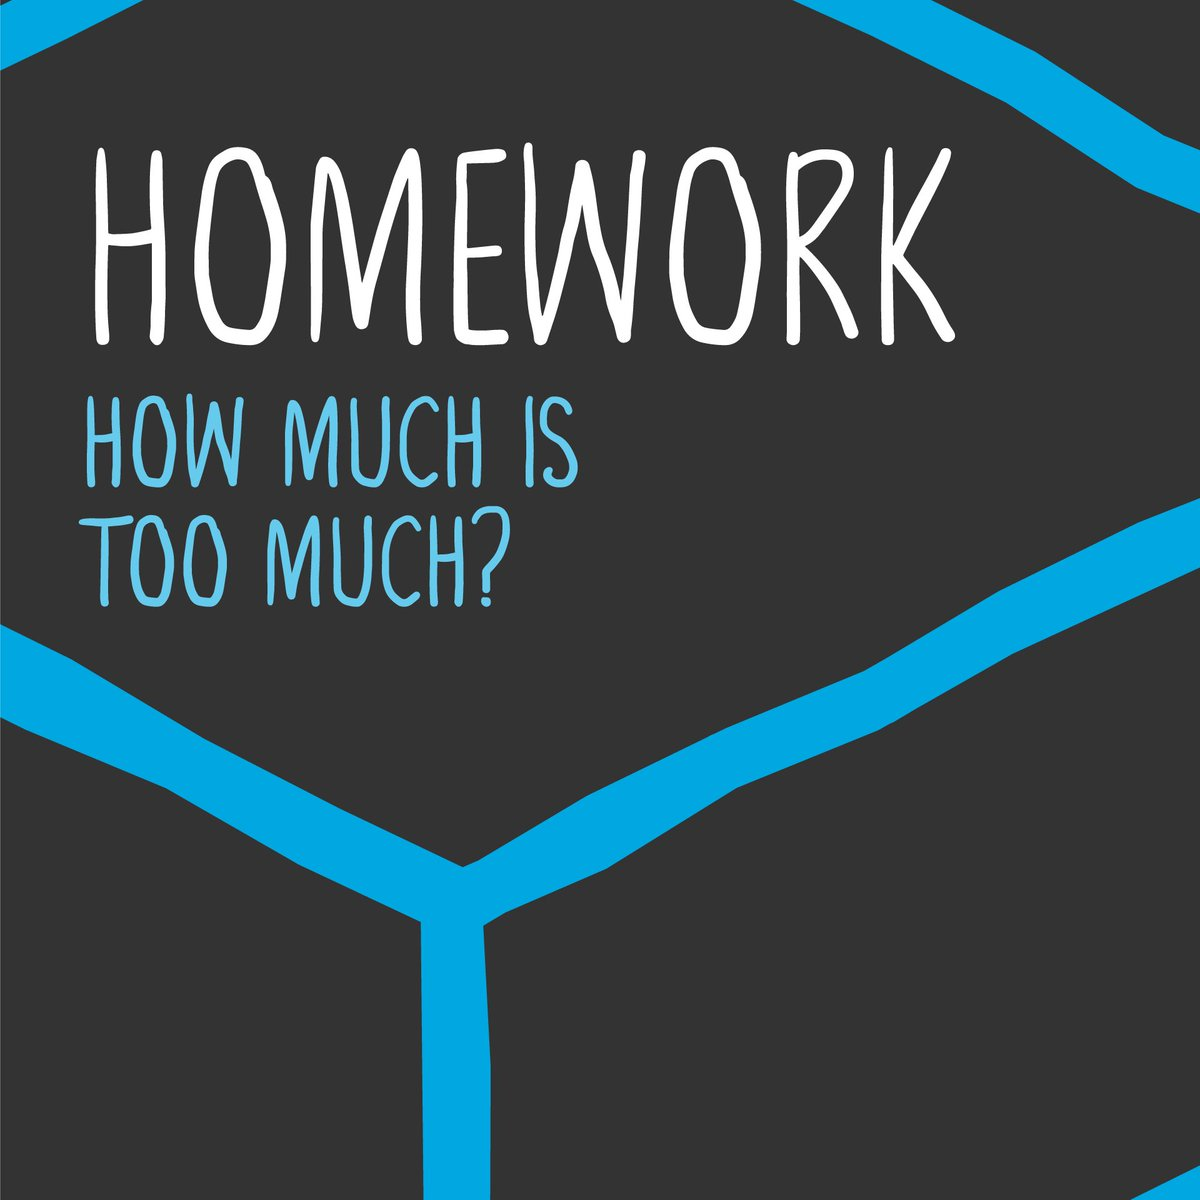 According to the research, homework does have benefits, but only up to a point. https://t.co/DWYYhBWwKQ